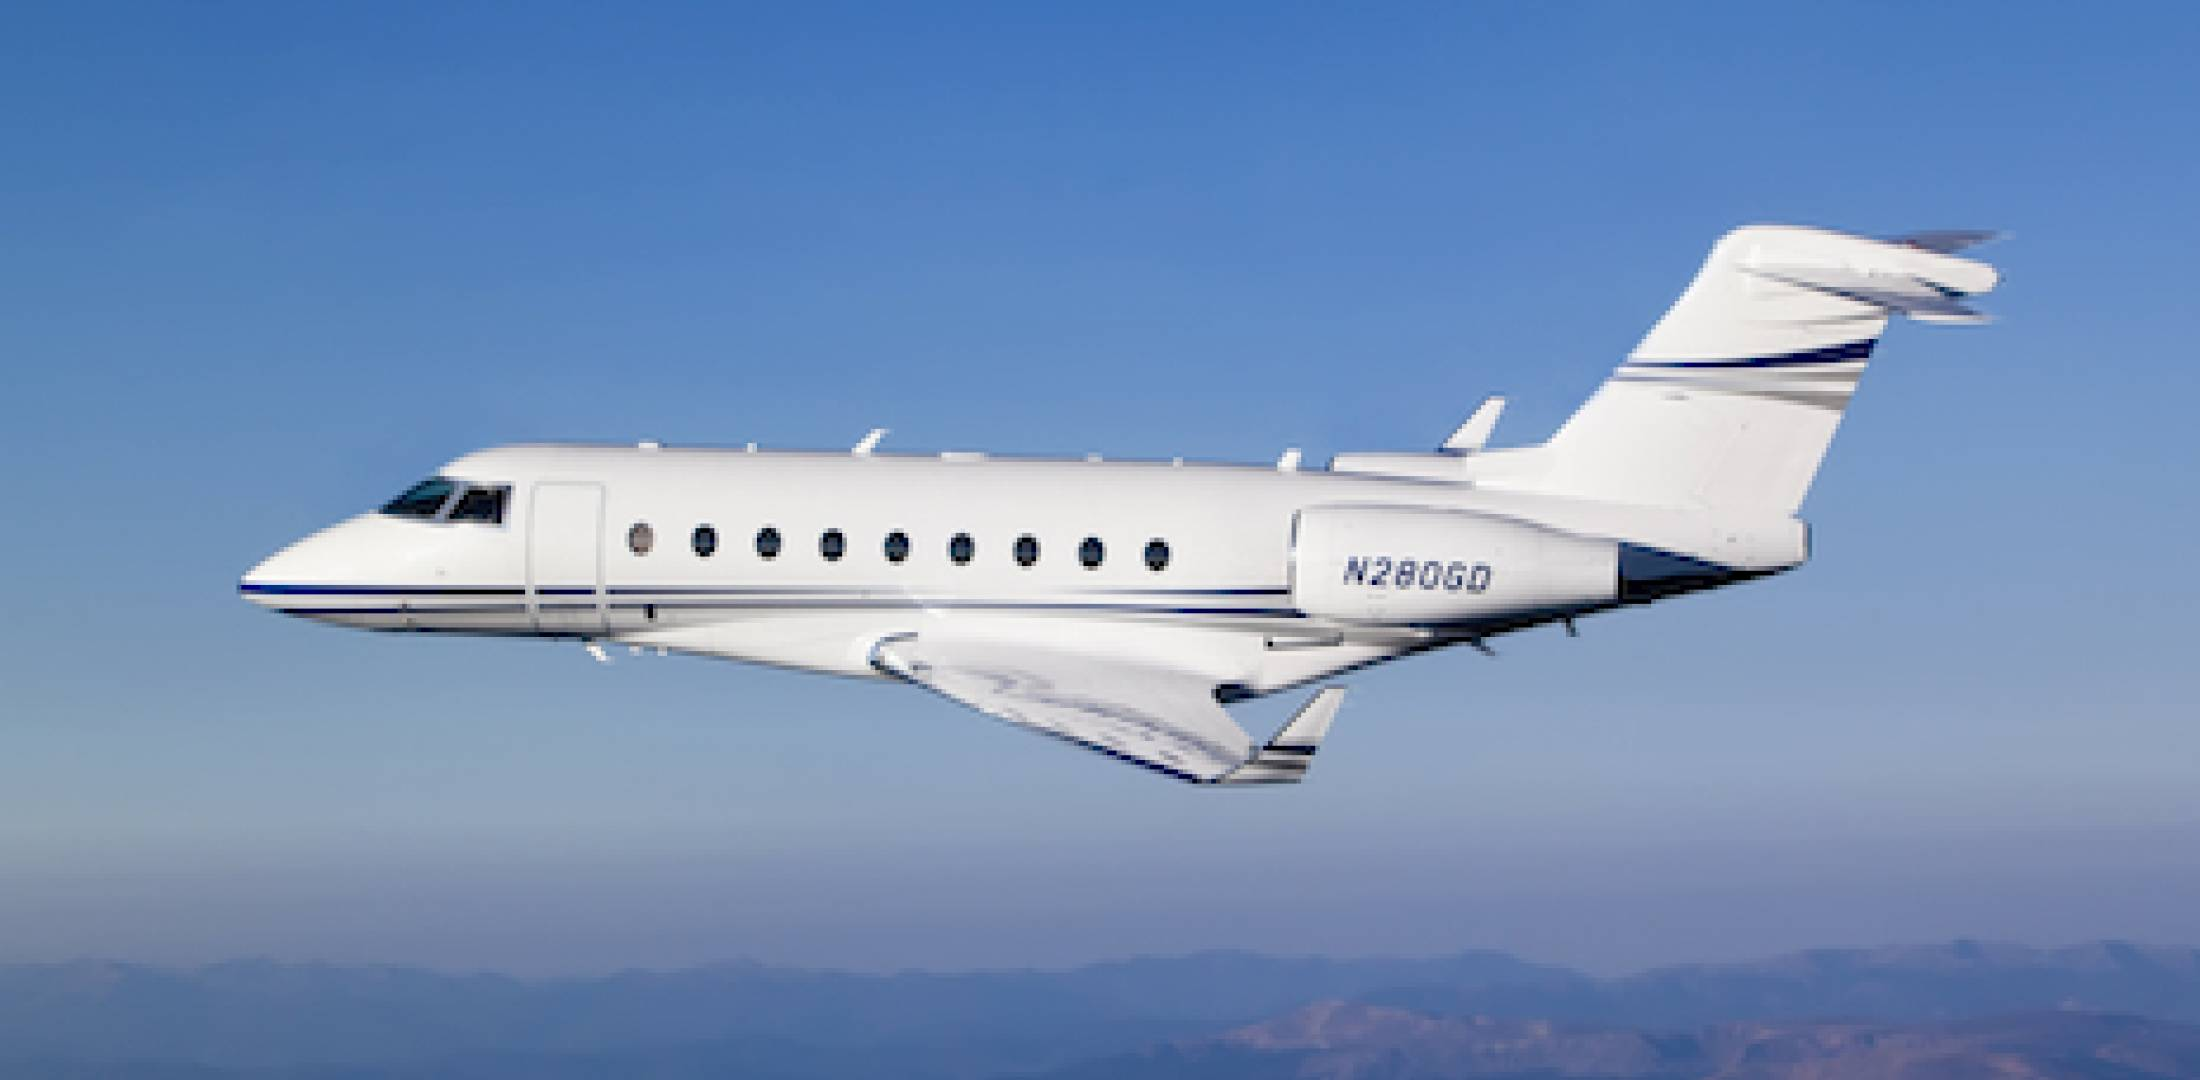 The Gulfstream G280 recently set 15 new city-pair speed records as part of the company's reliability demonstration program, bringing the super-midsize jet to a total of 22 speed records.